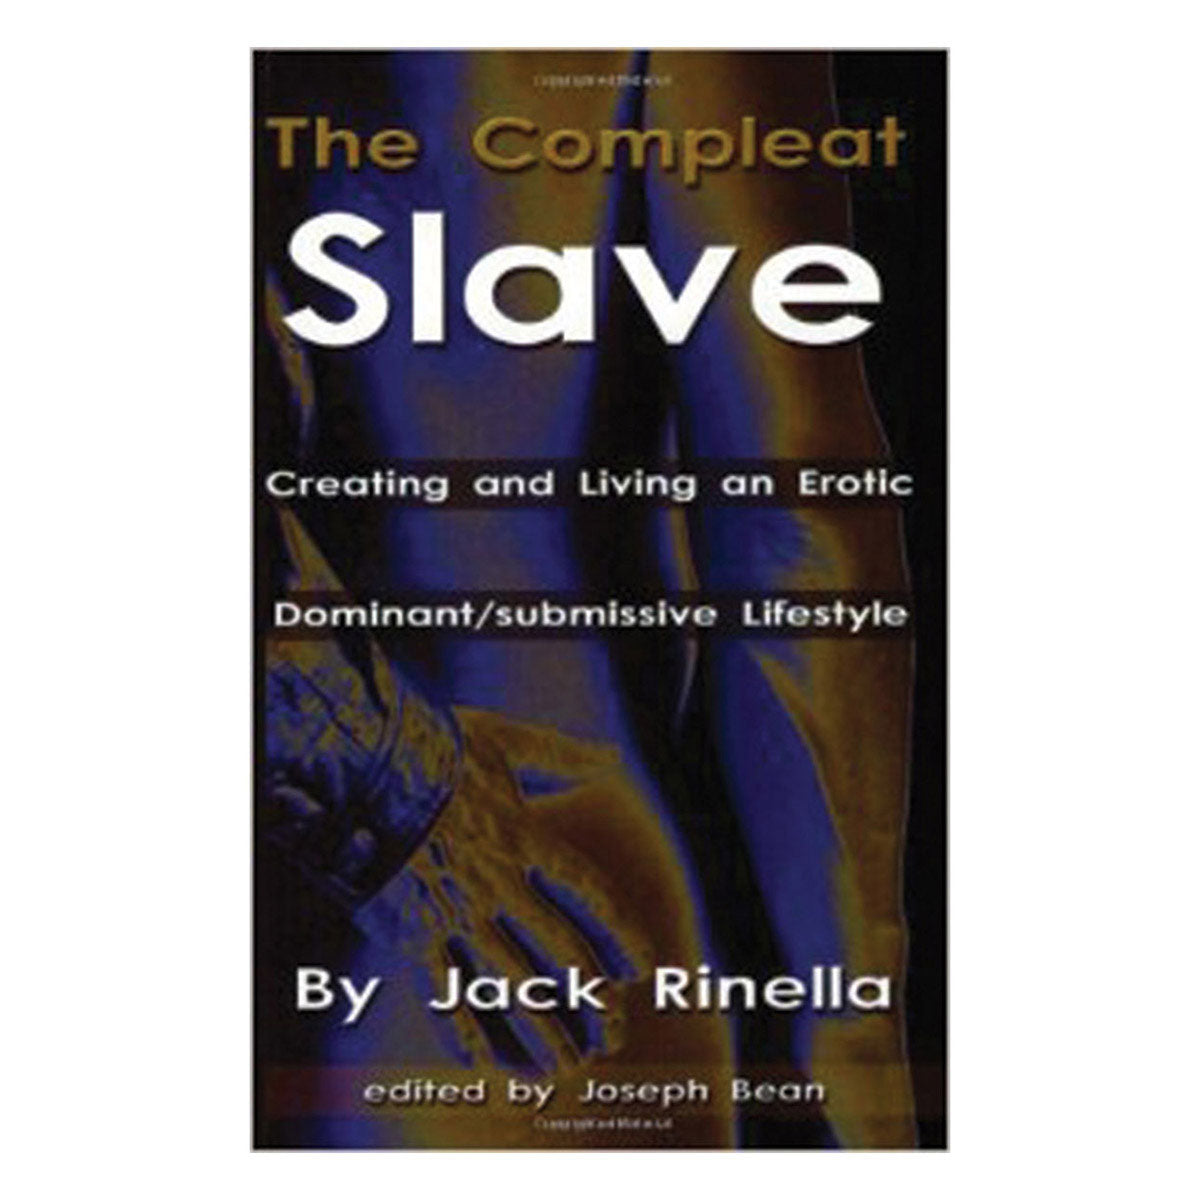 Compleat Slave - Creating and Living an Erotic Dominant/Submissive Lifestyle - Daedalus Publishing